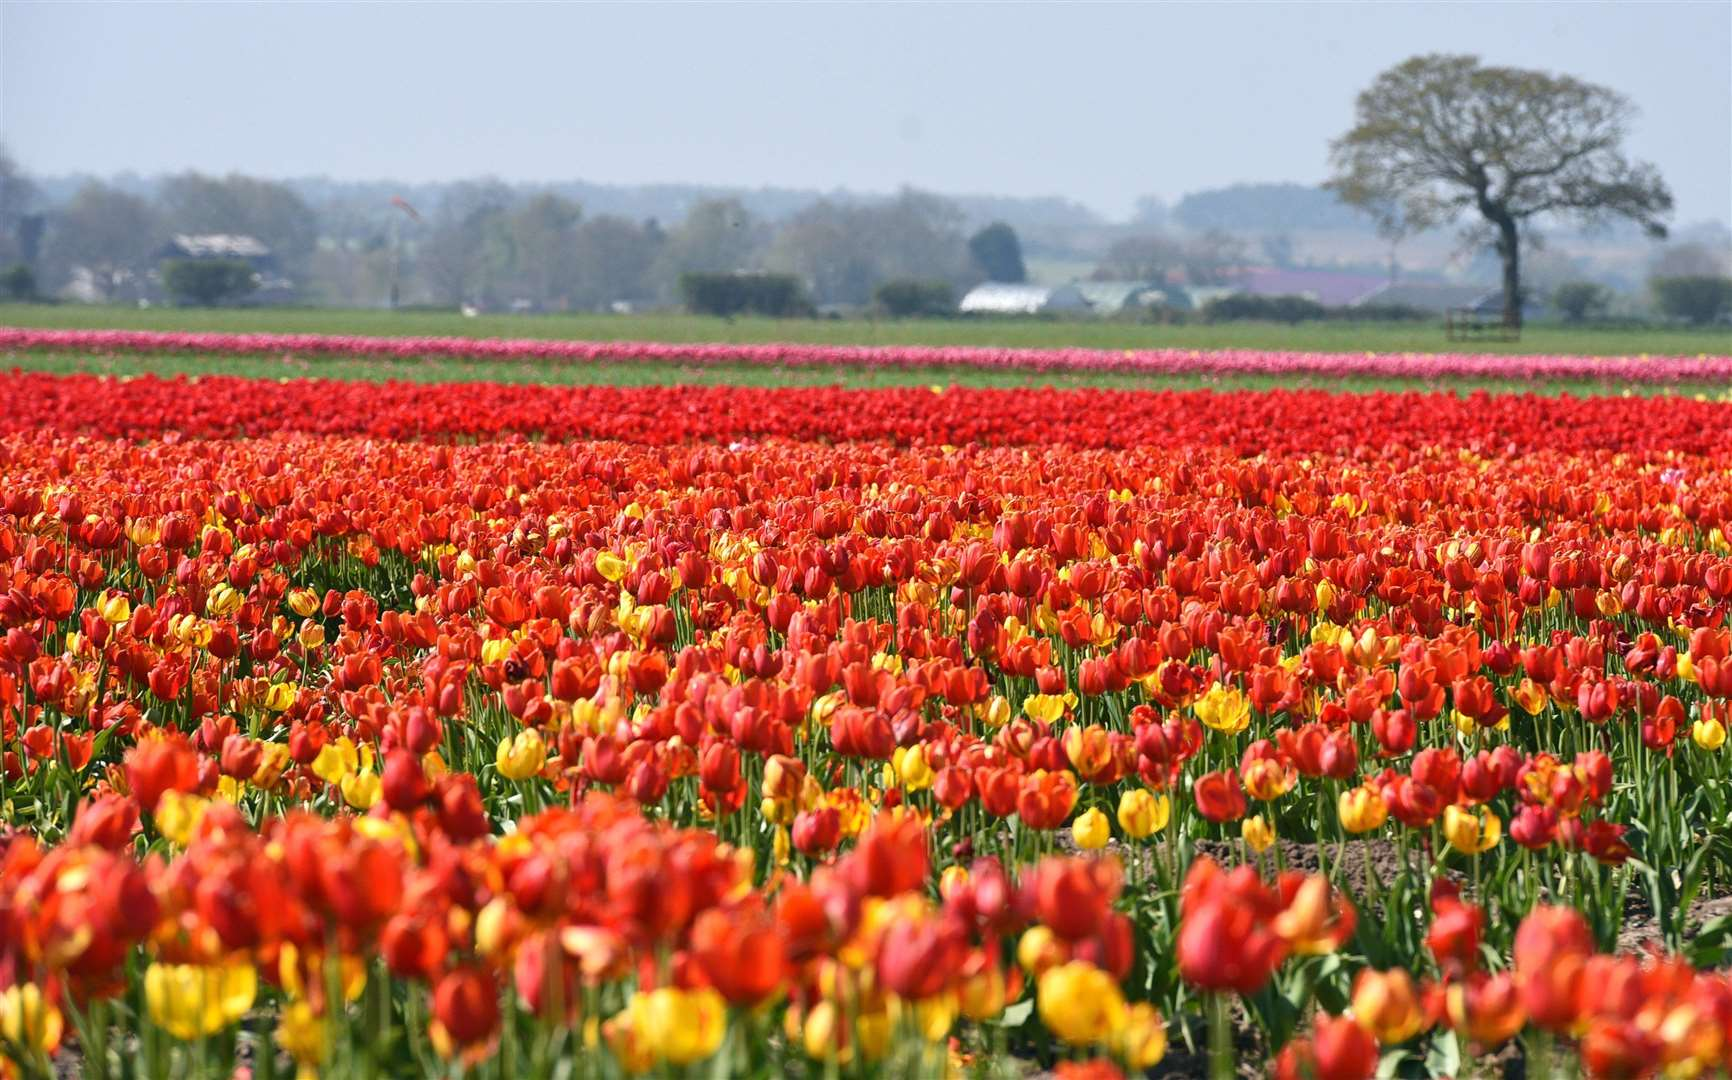 A Belmont Nurseries' field of tulips at Gayton Road. East Winch